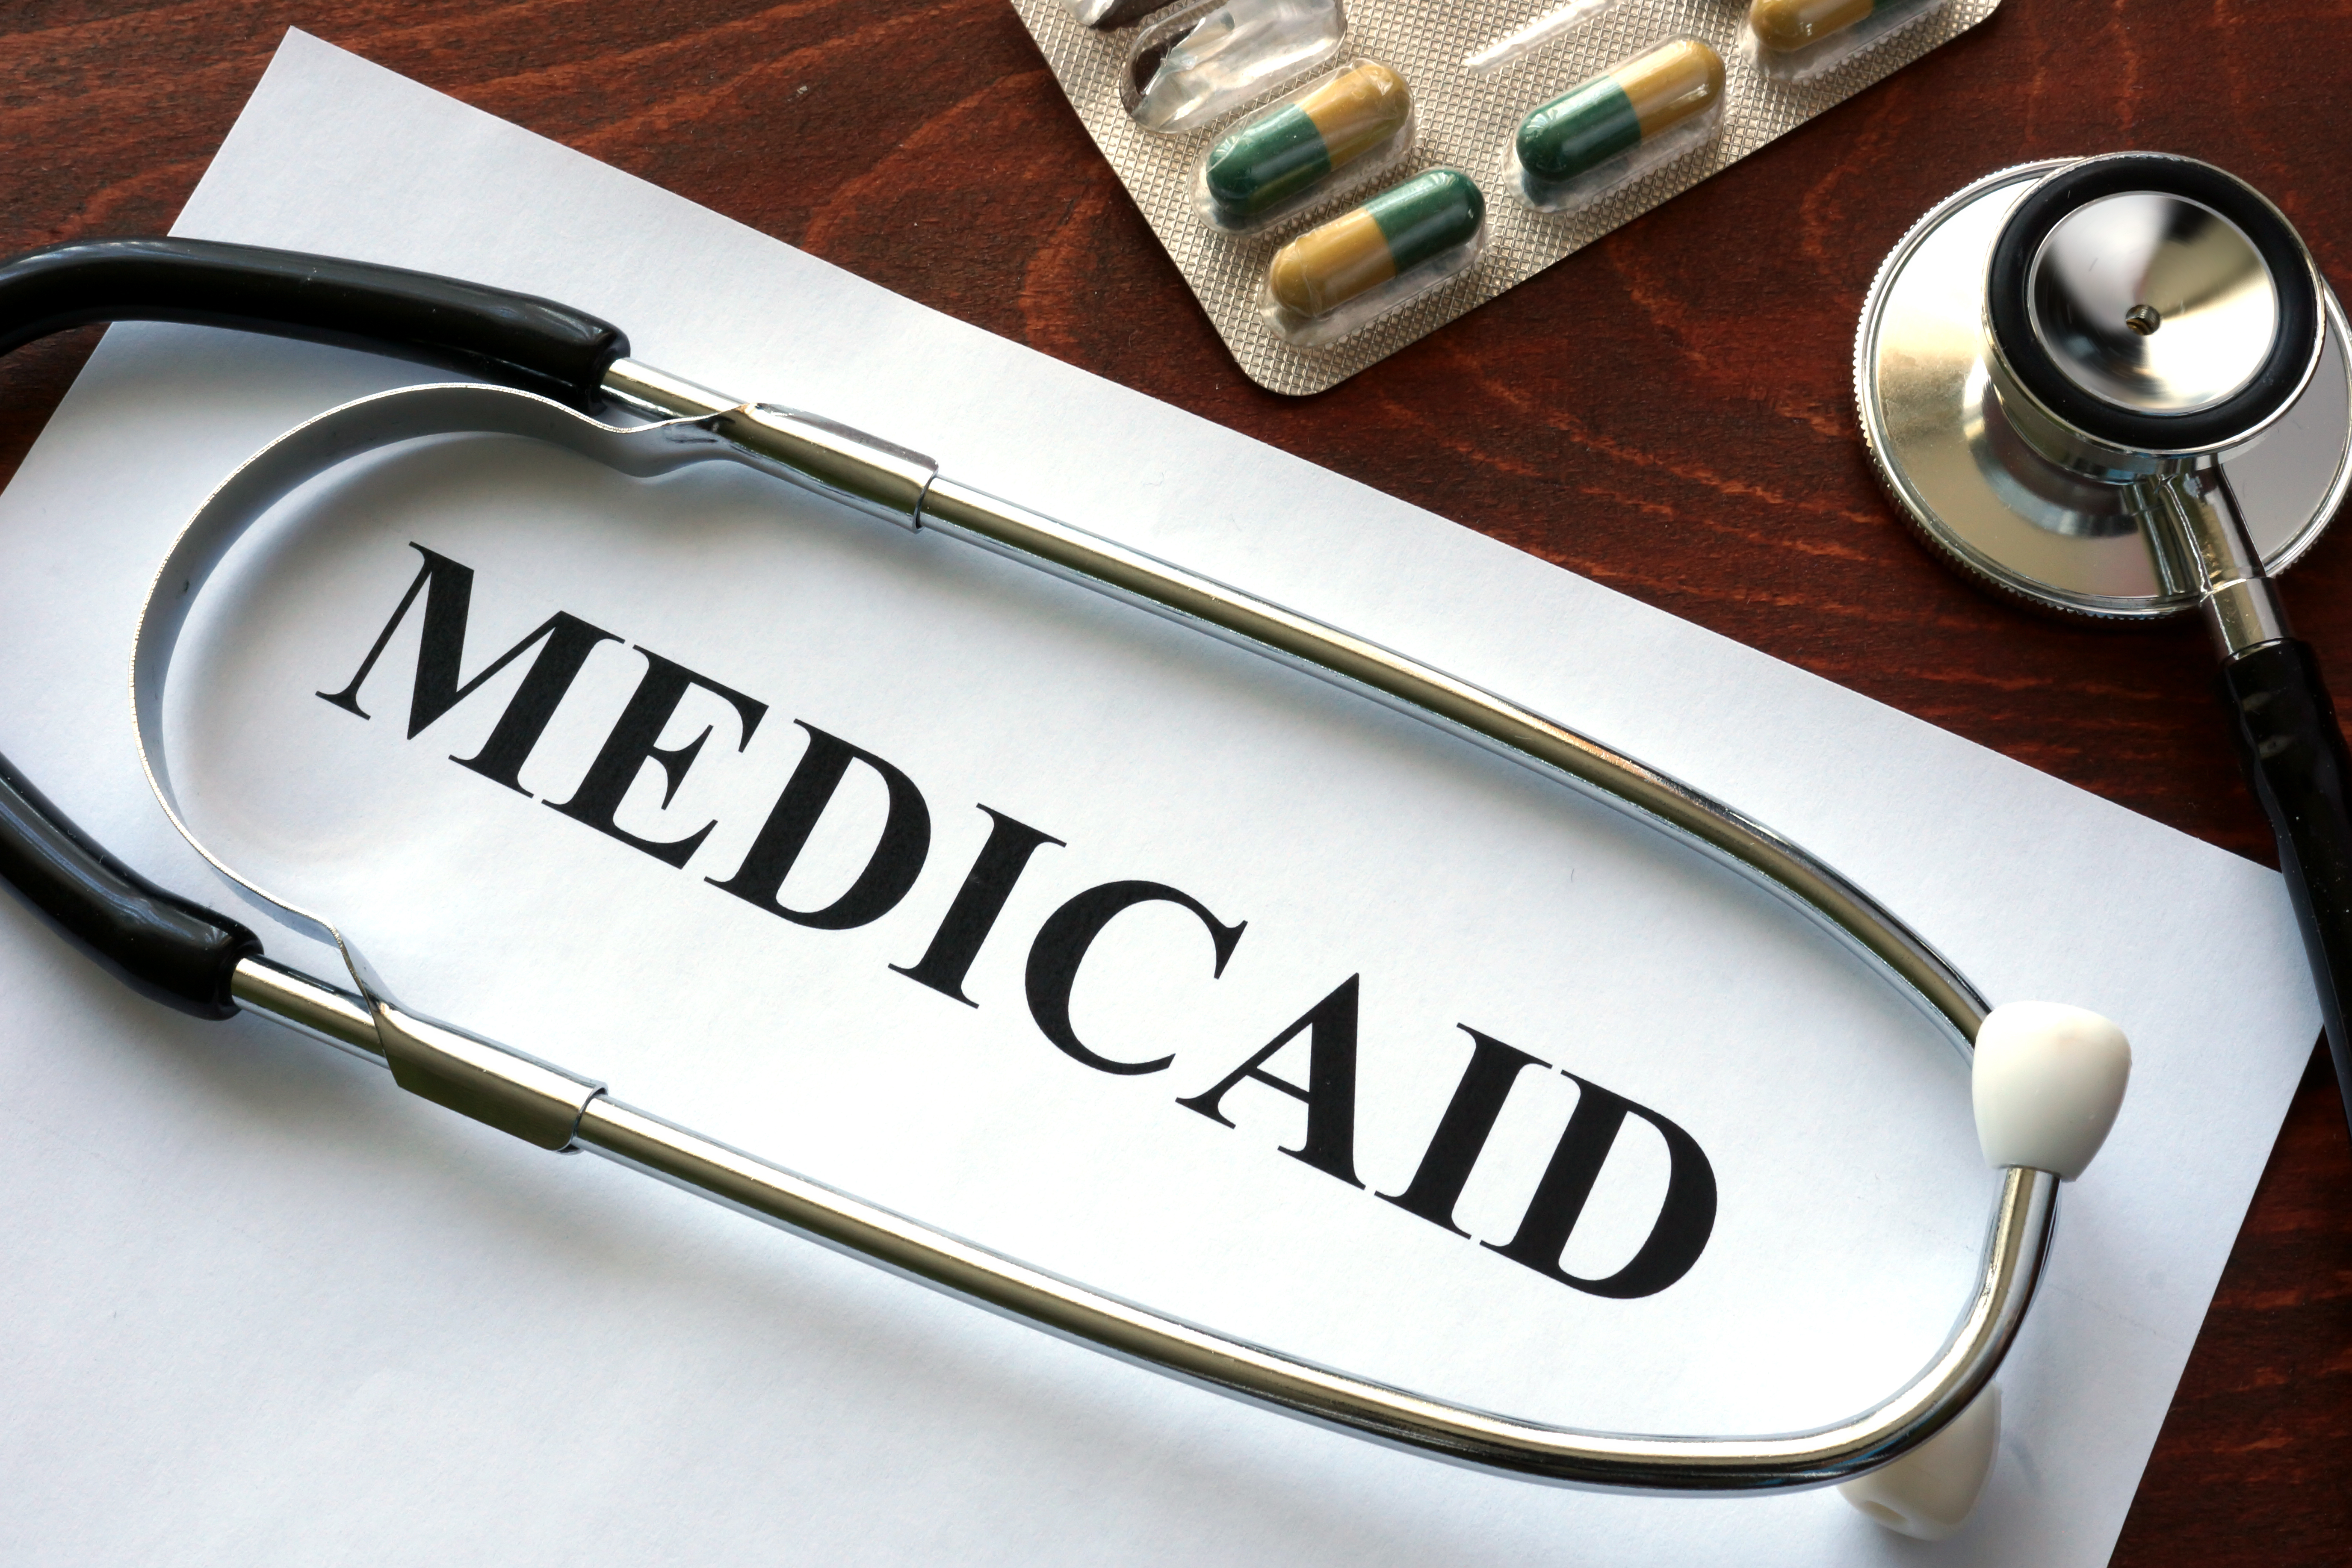 Virginia declines to refund $7 7M in Medicaid administrative